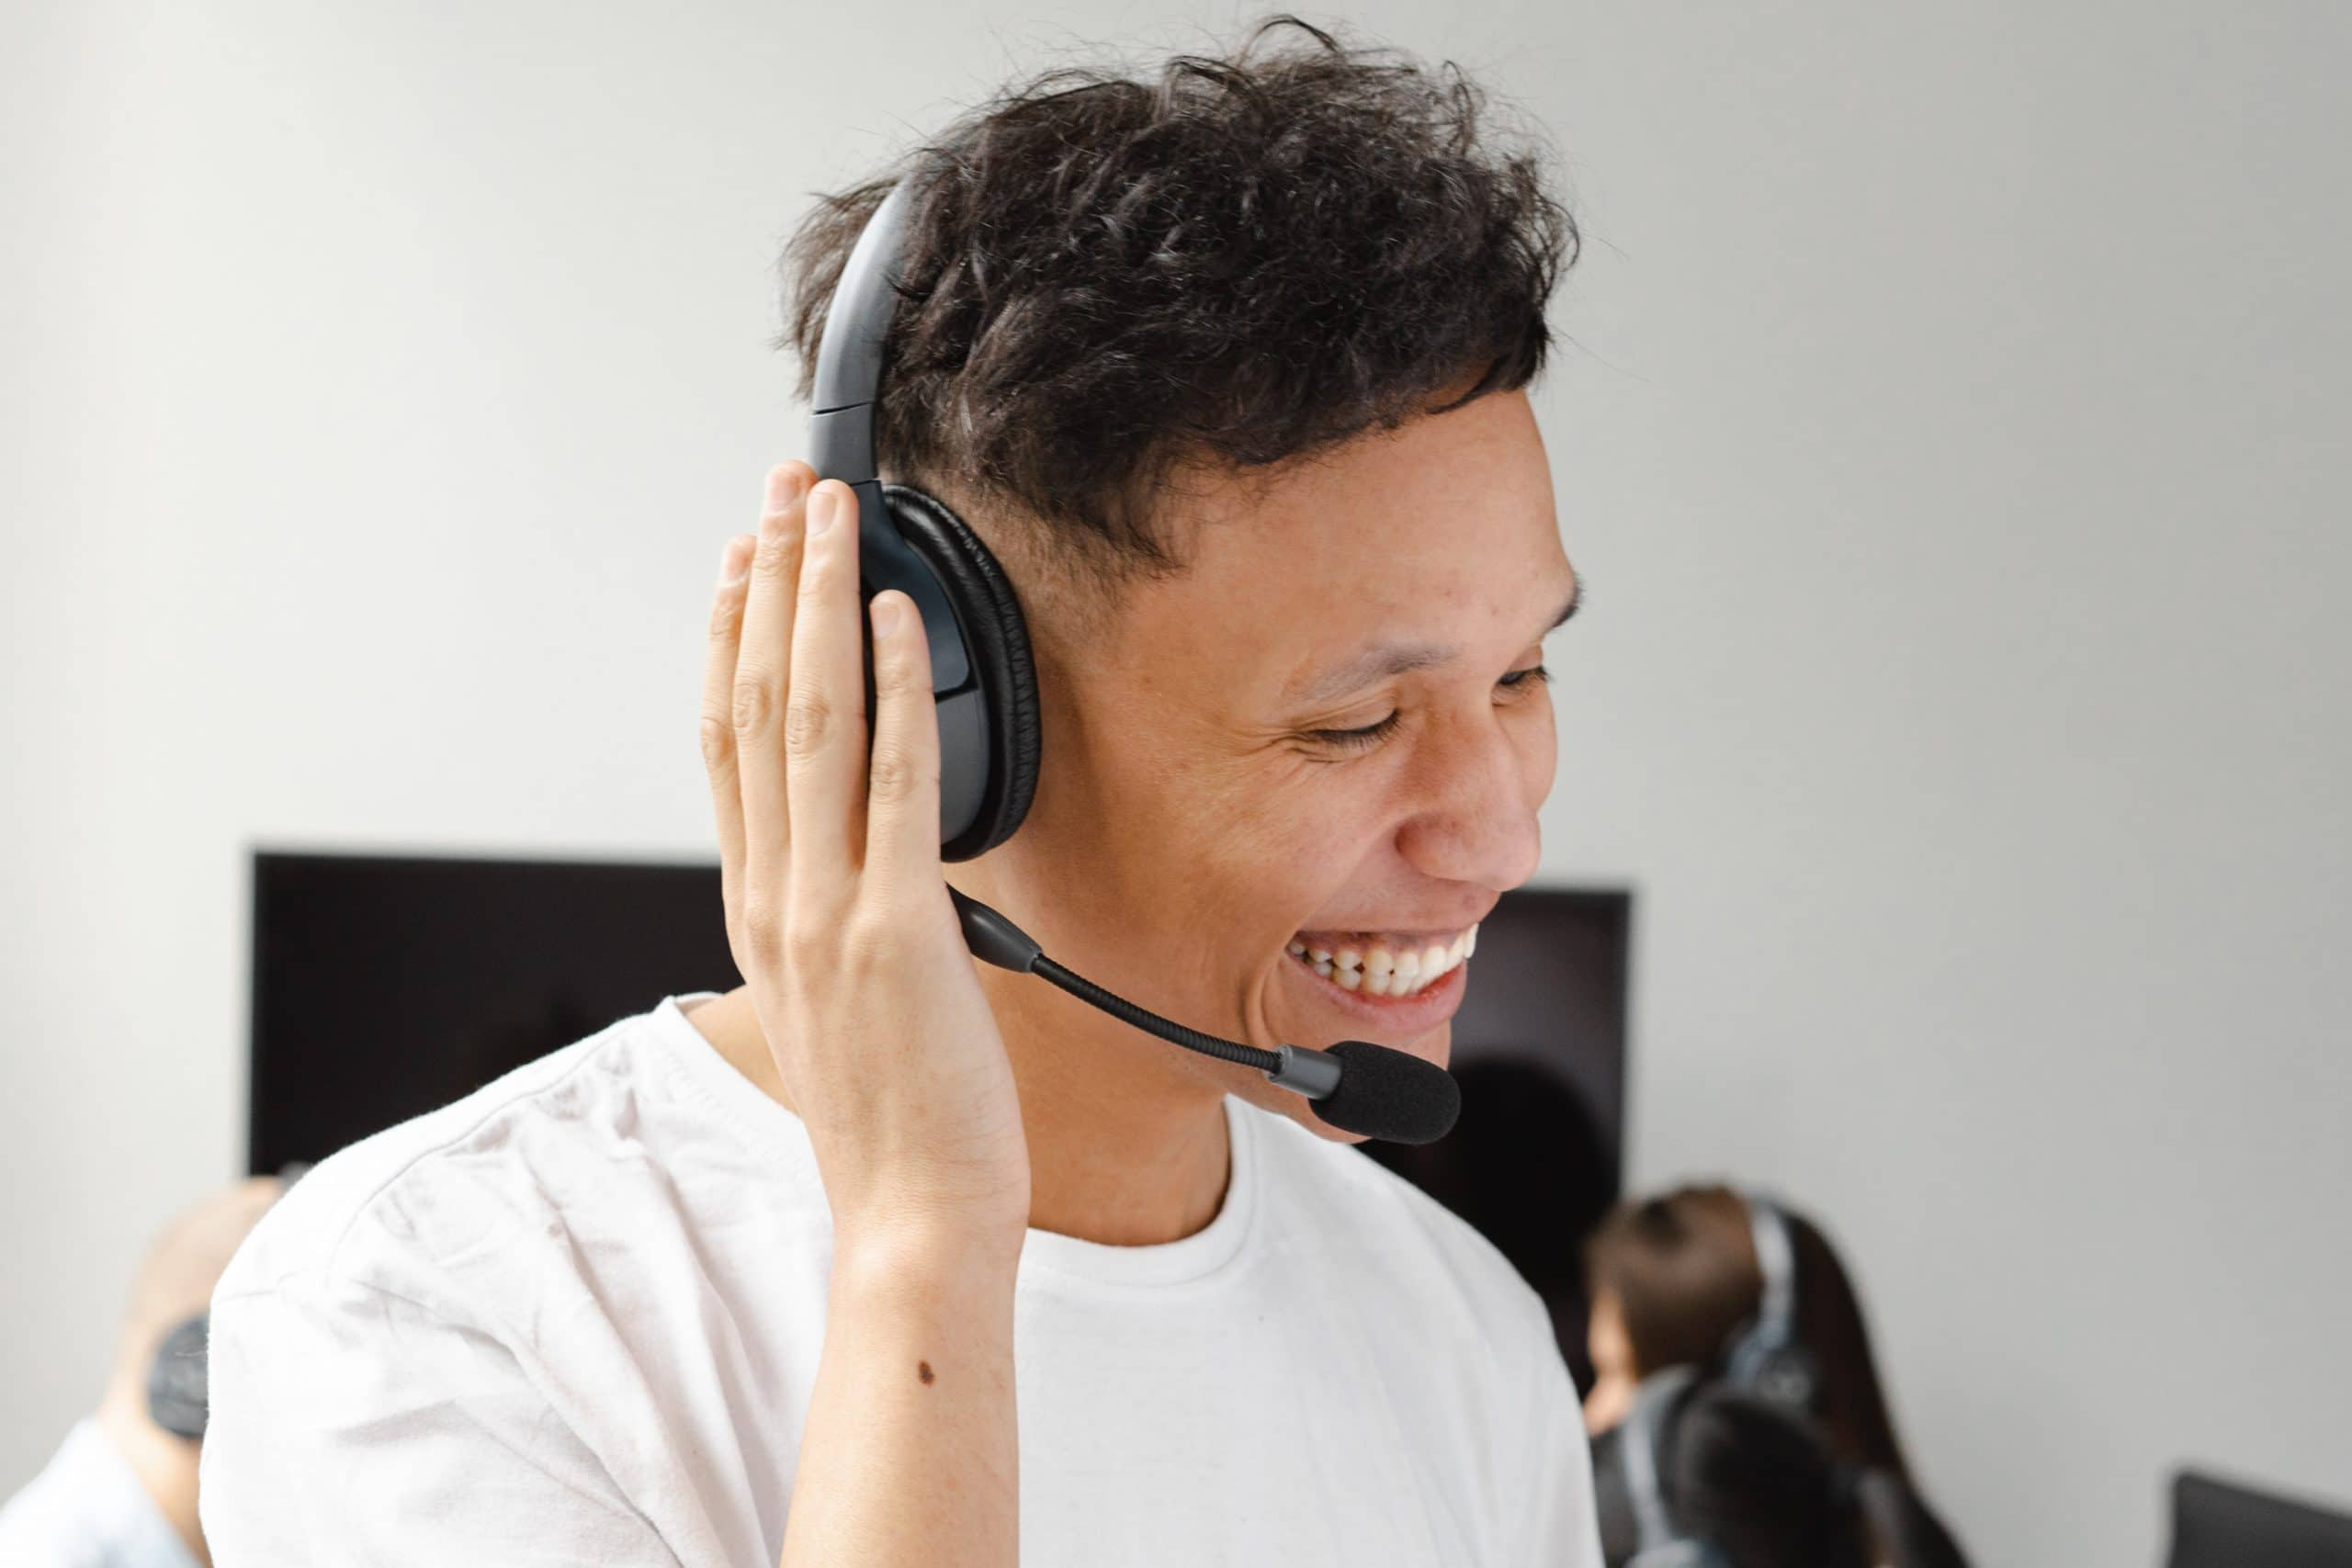 Live voice agent provides customer service support to a client